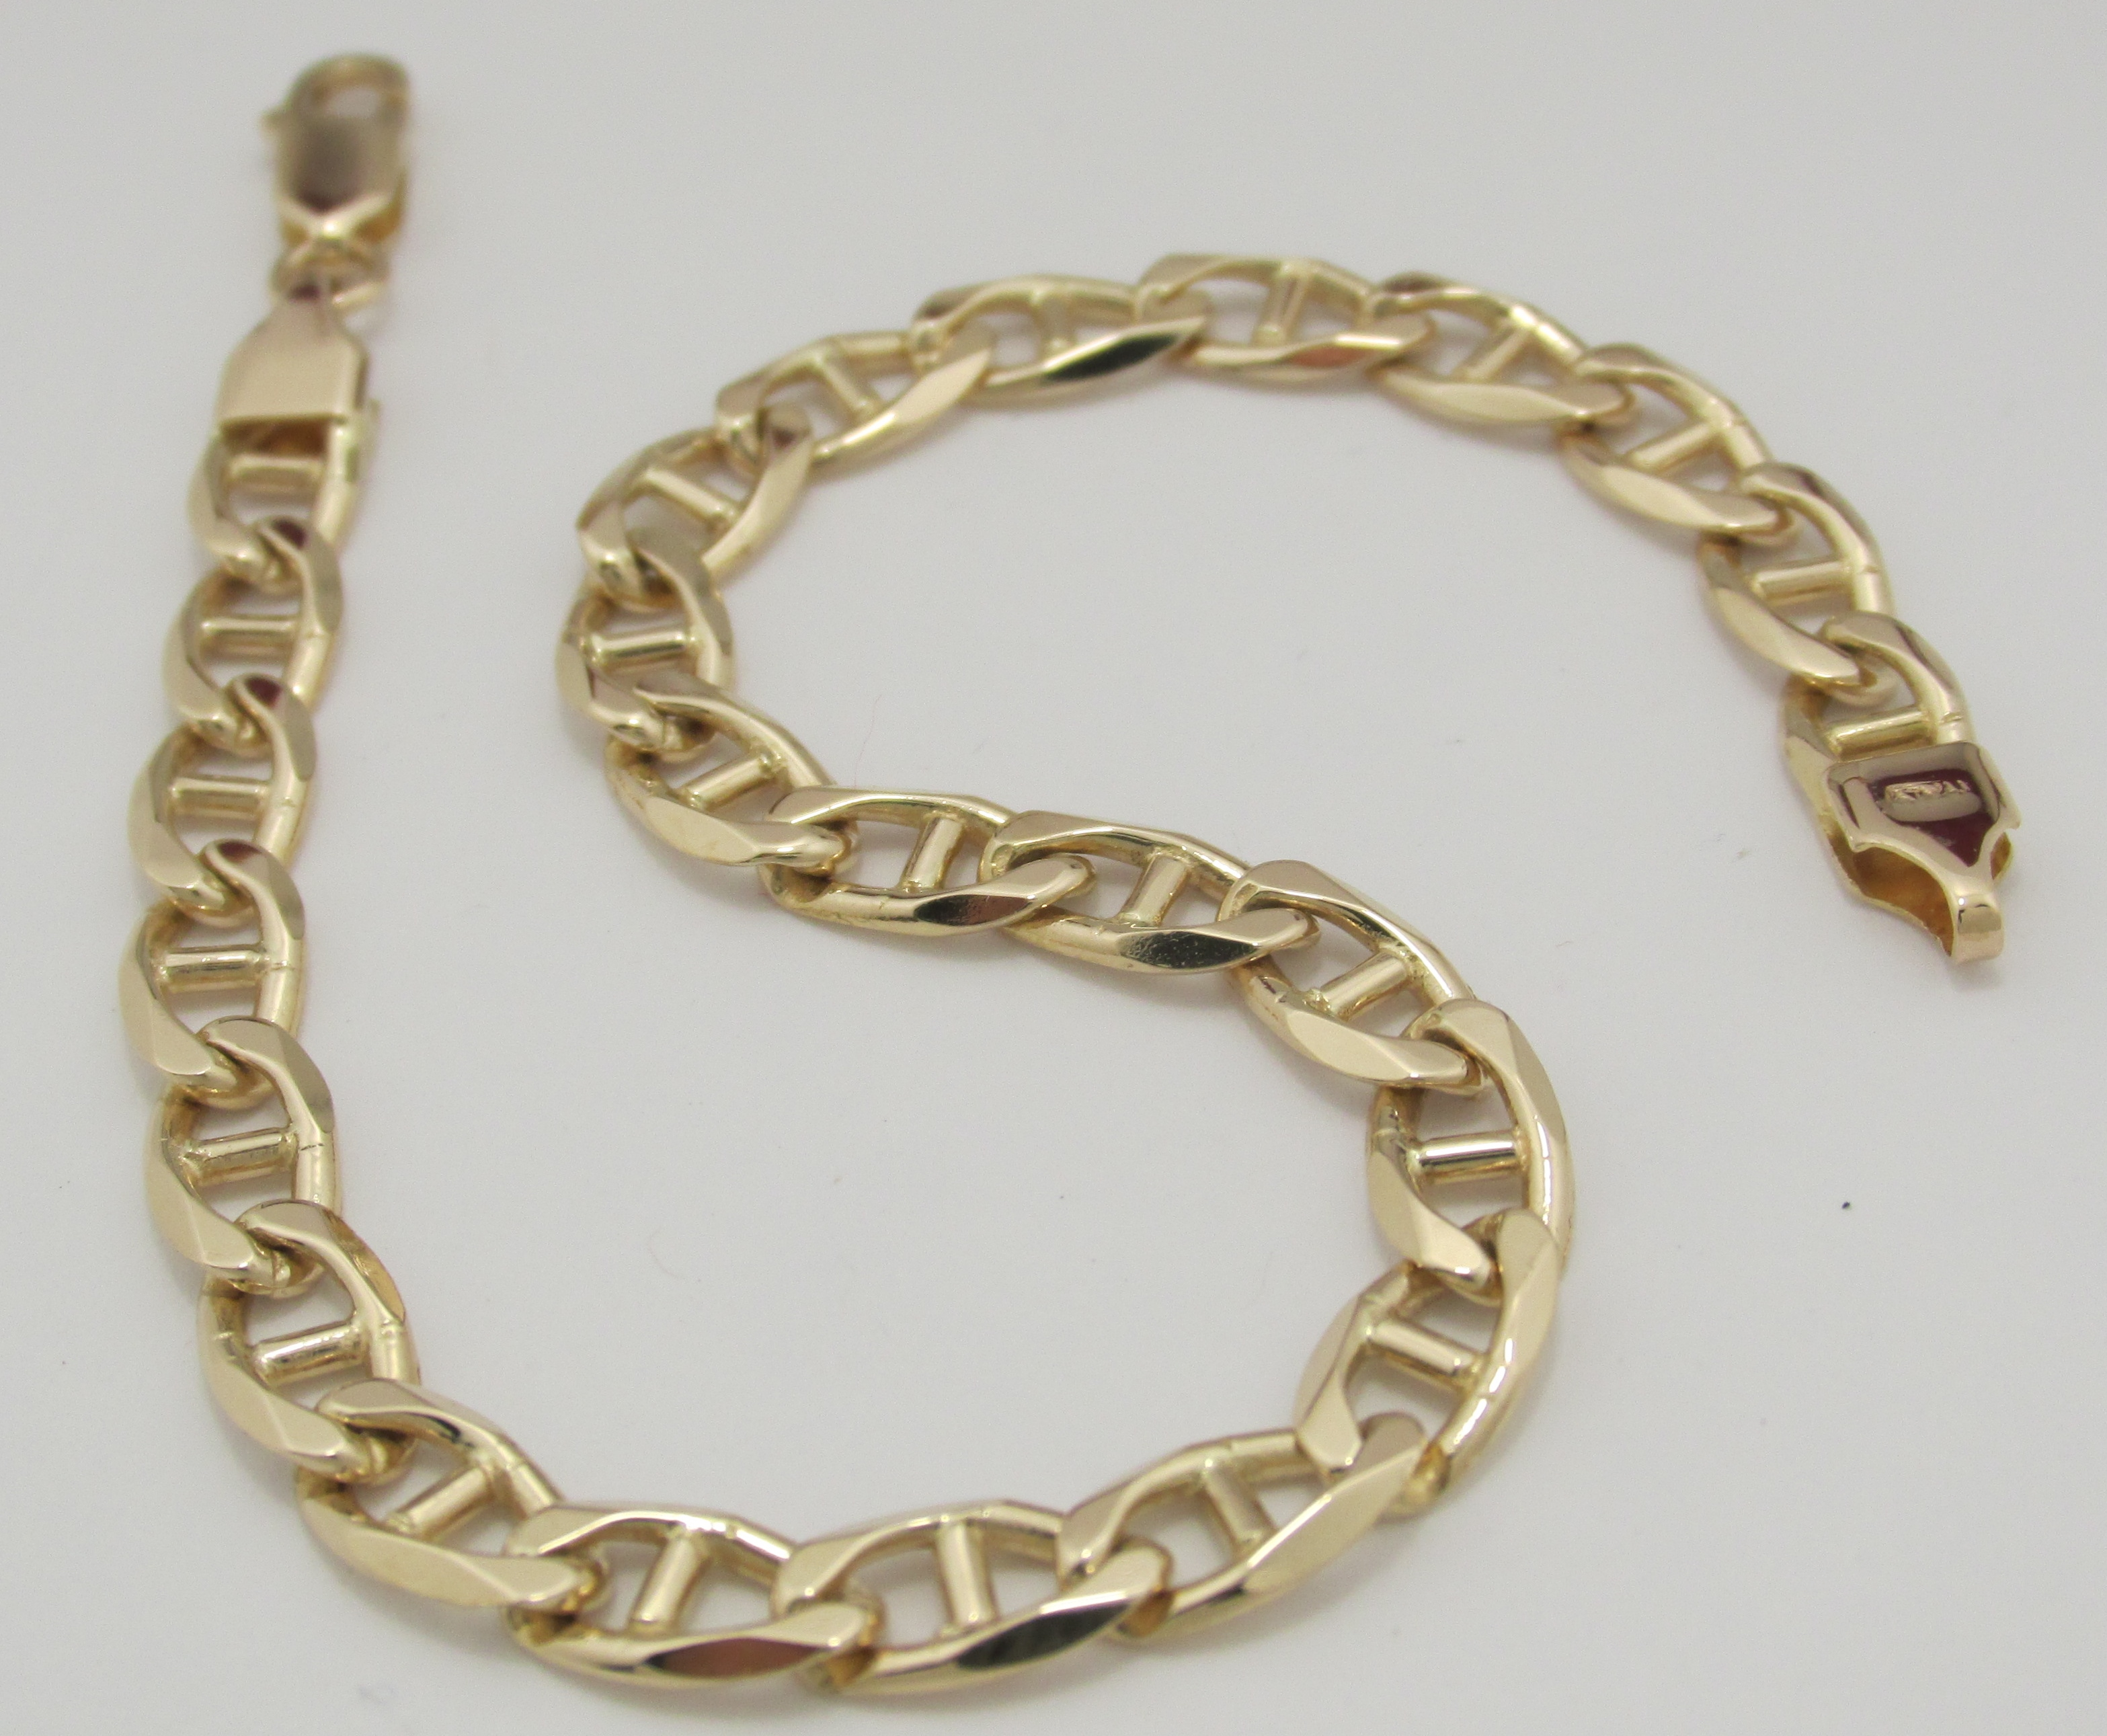 coil square camuto pin gold bracelet large with vince stone